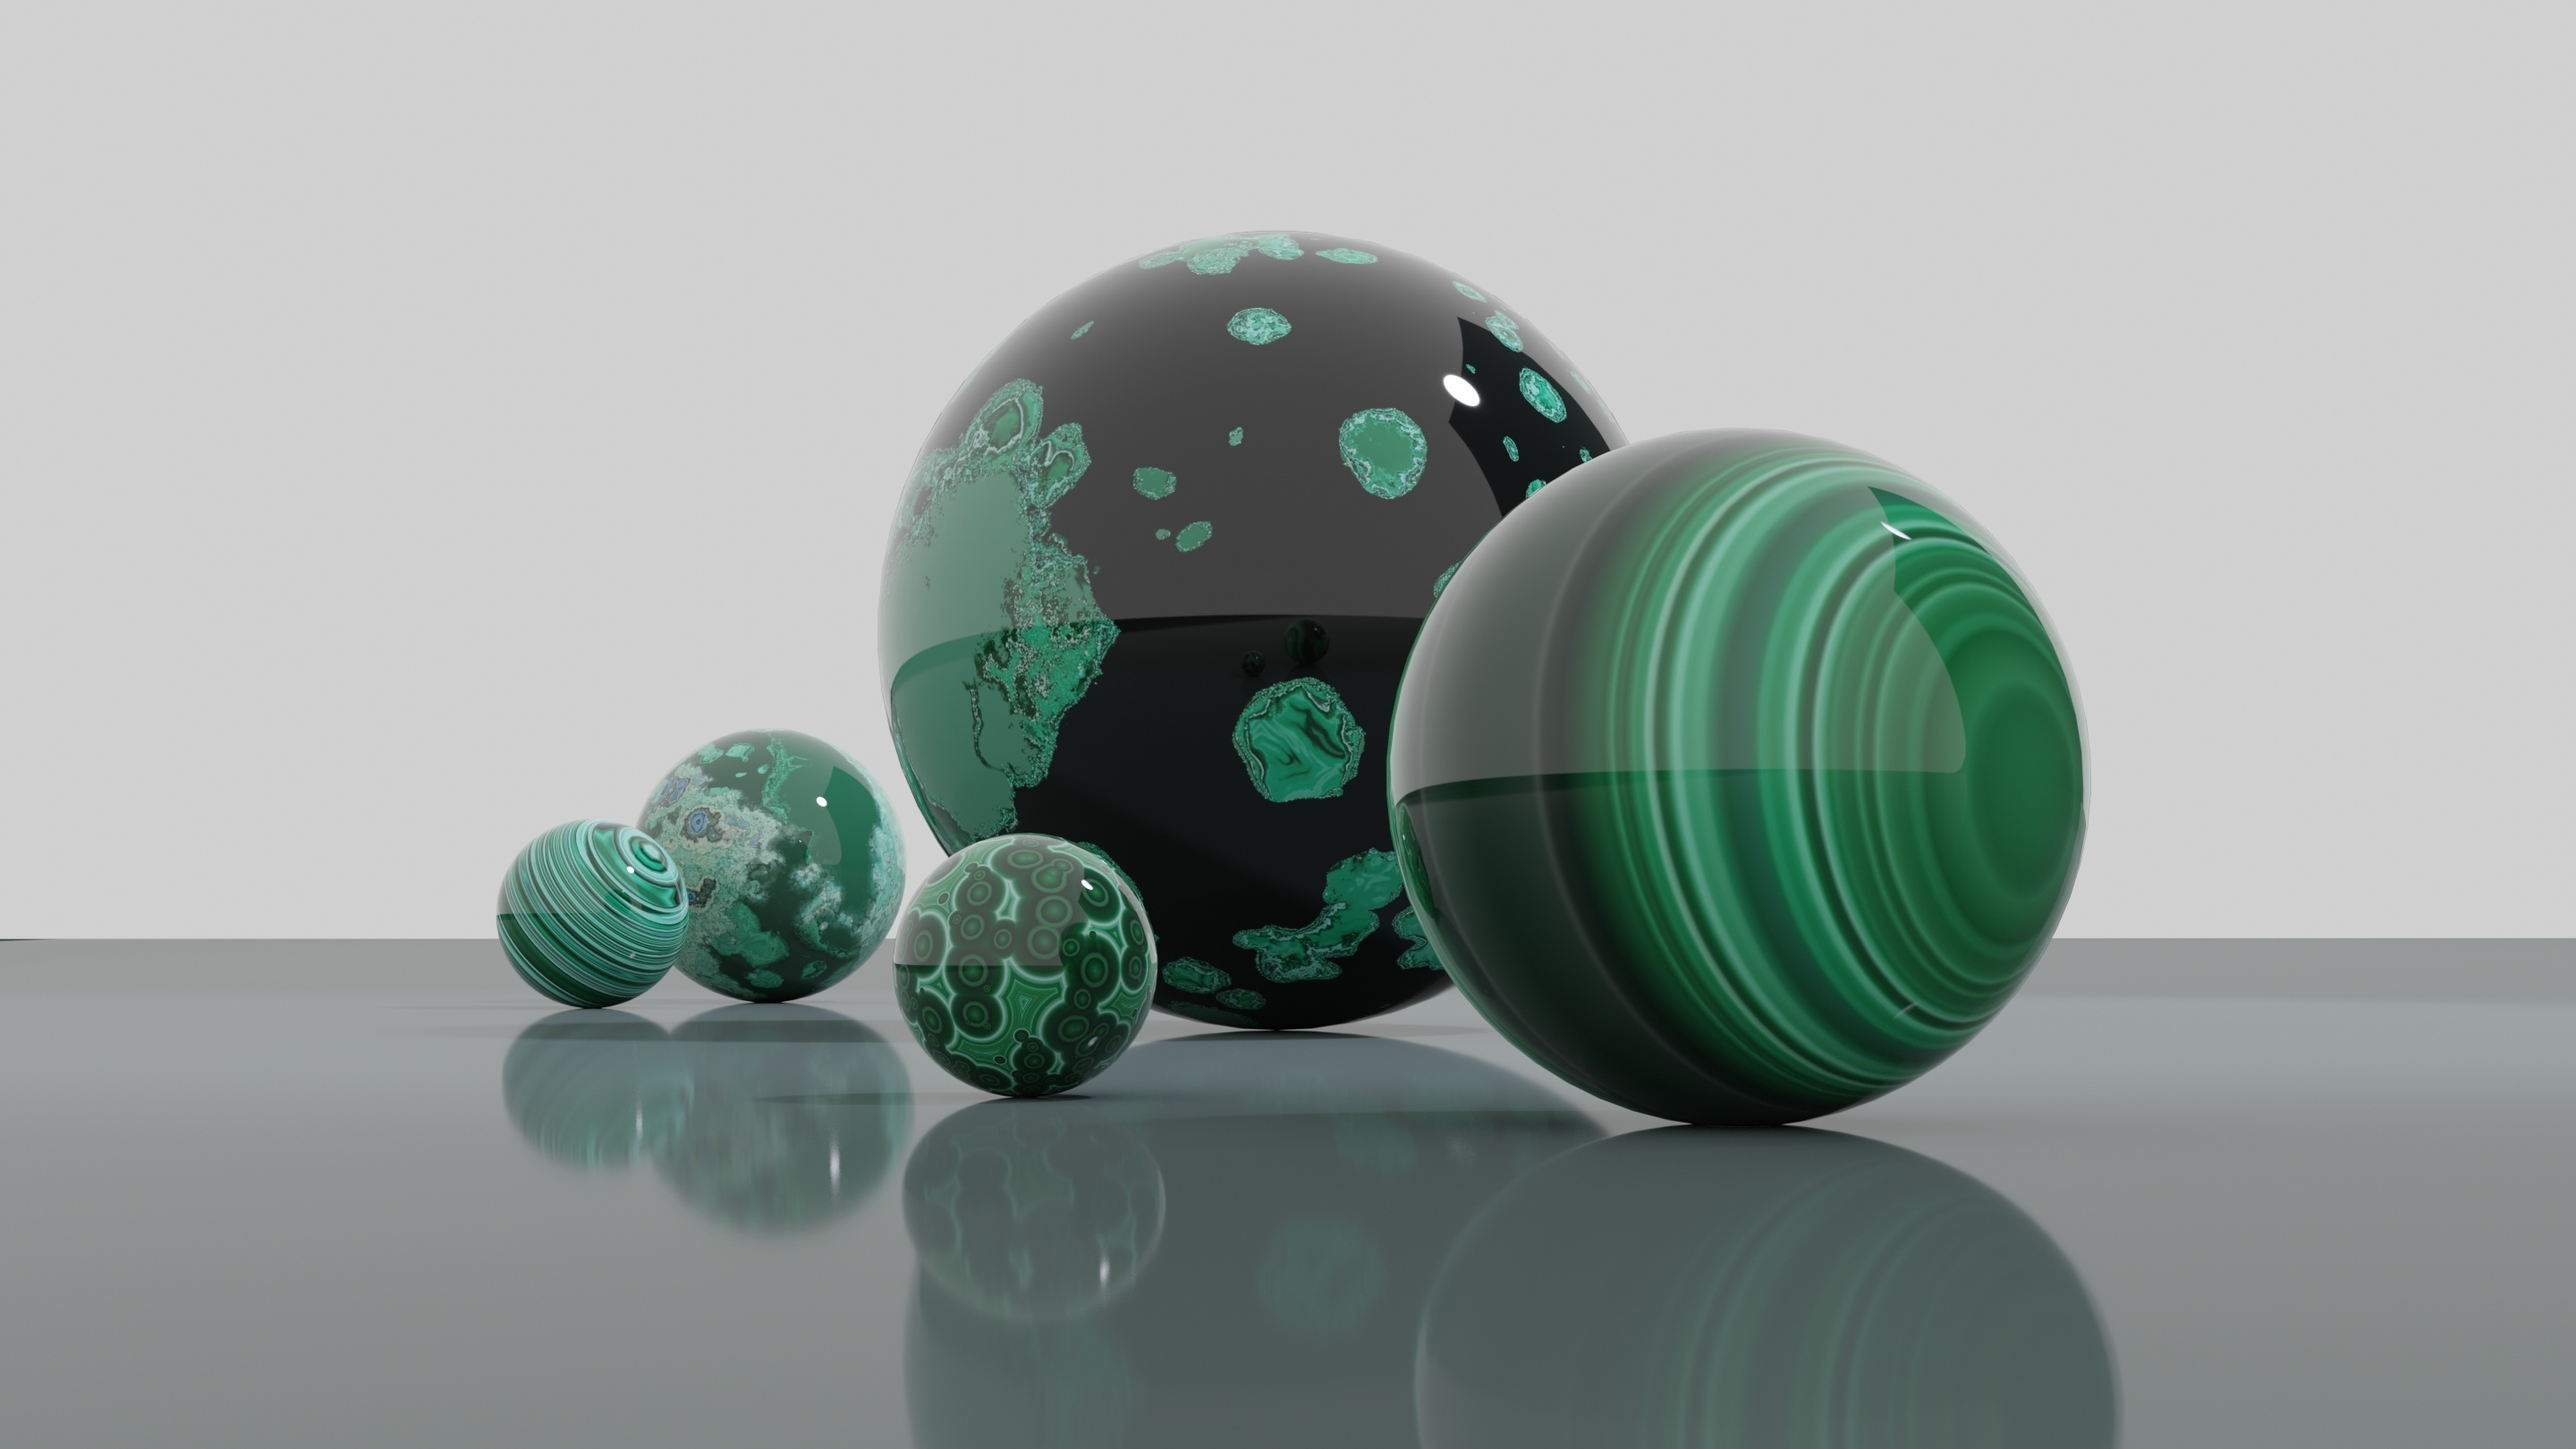 3D illustration of polished malachite mineral balls in bright light and grey-white background